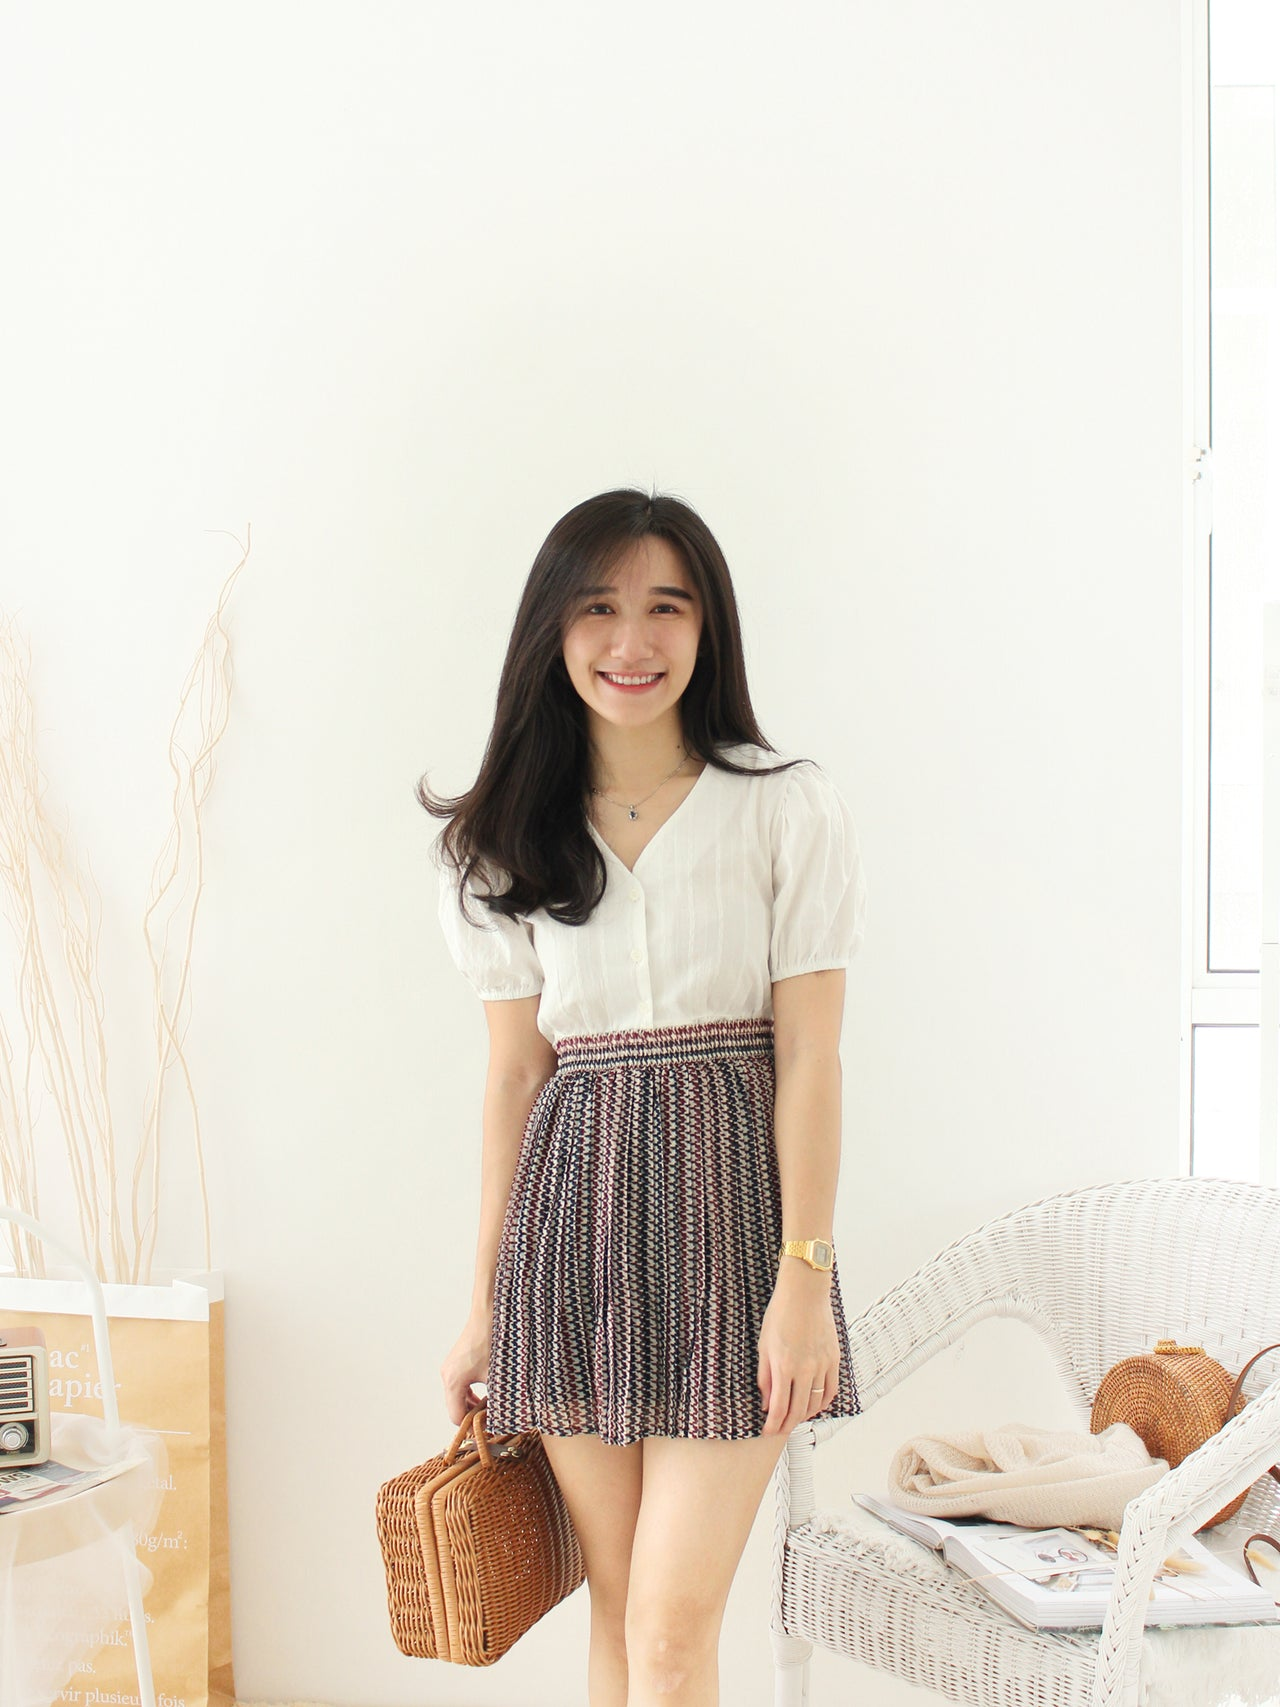 FOREVER 21 SKIRT - LovelyMadness Clothing Online Fashion Malaysia